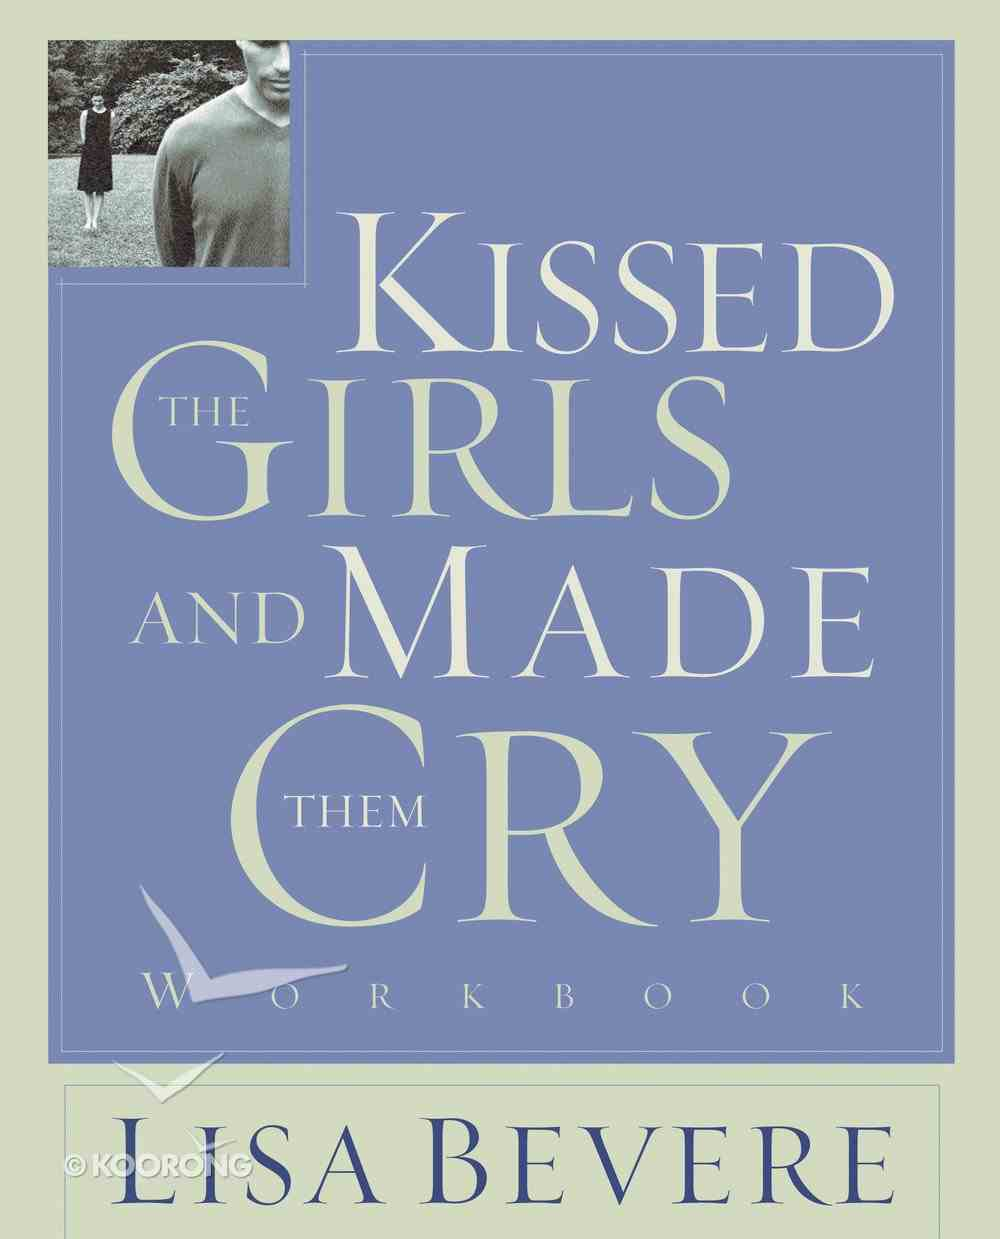 Kissed the Girls and Made Them Cry (Companion Workbook) eBook